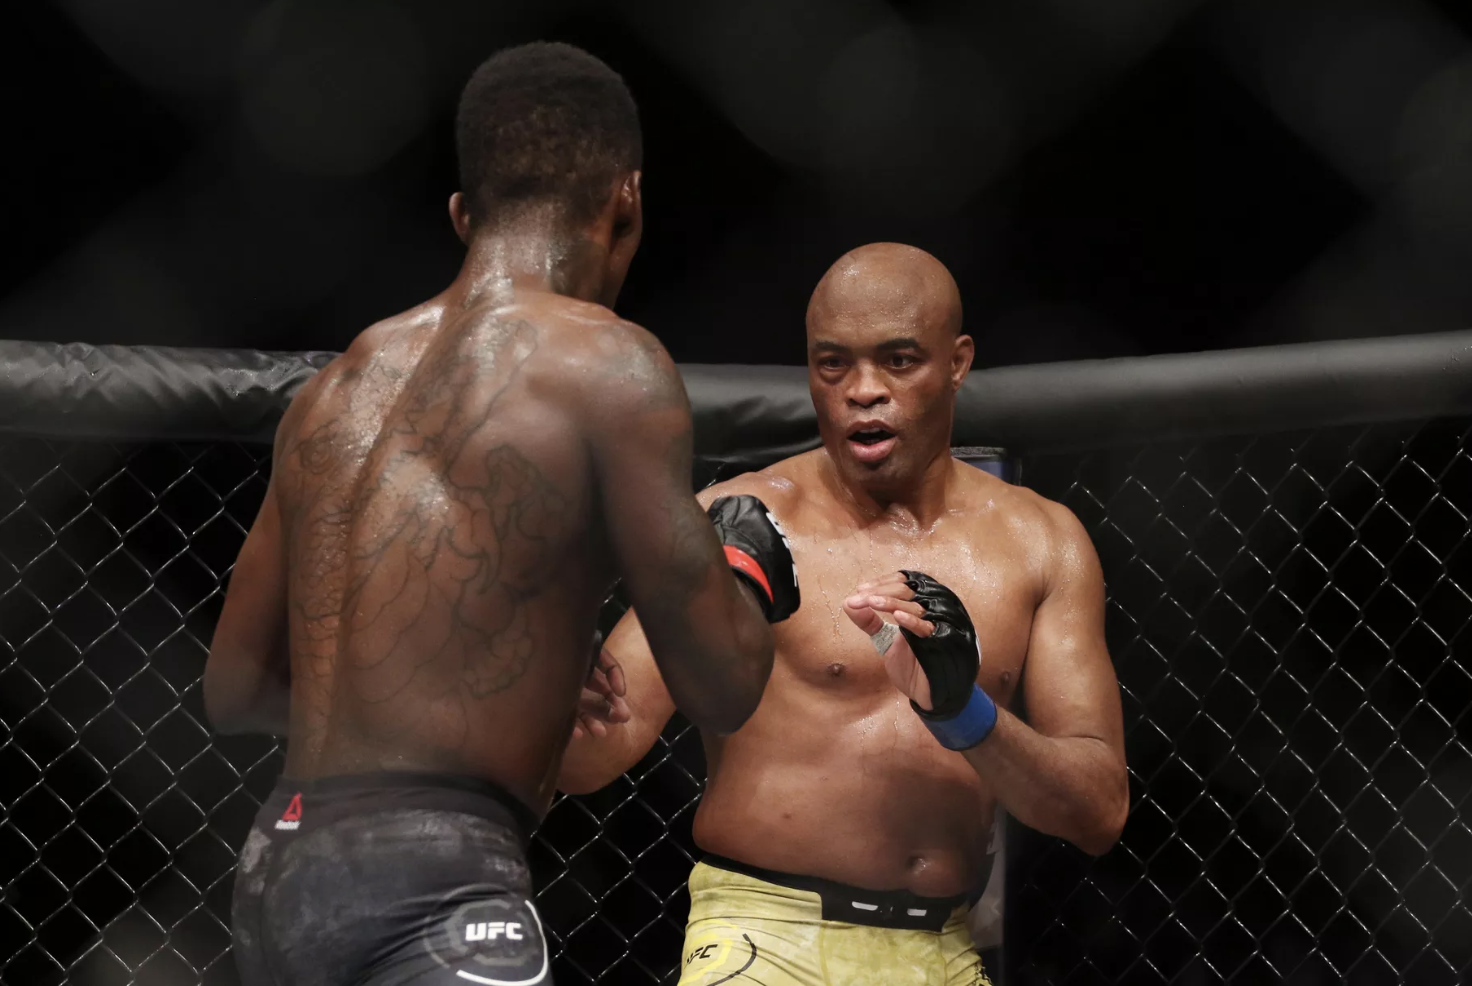 Anderson Silva vs  Jared Cannonier booked for UFC 237 in